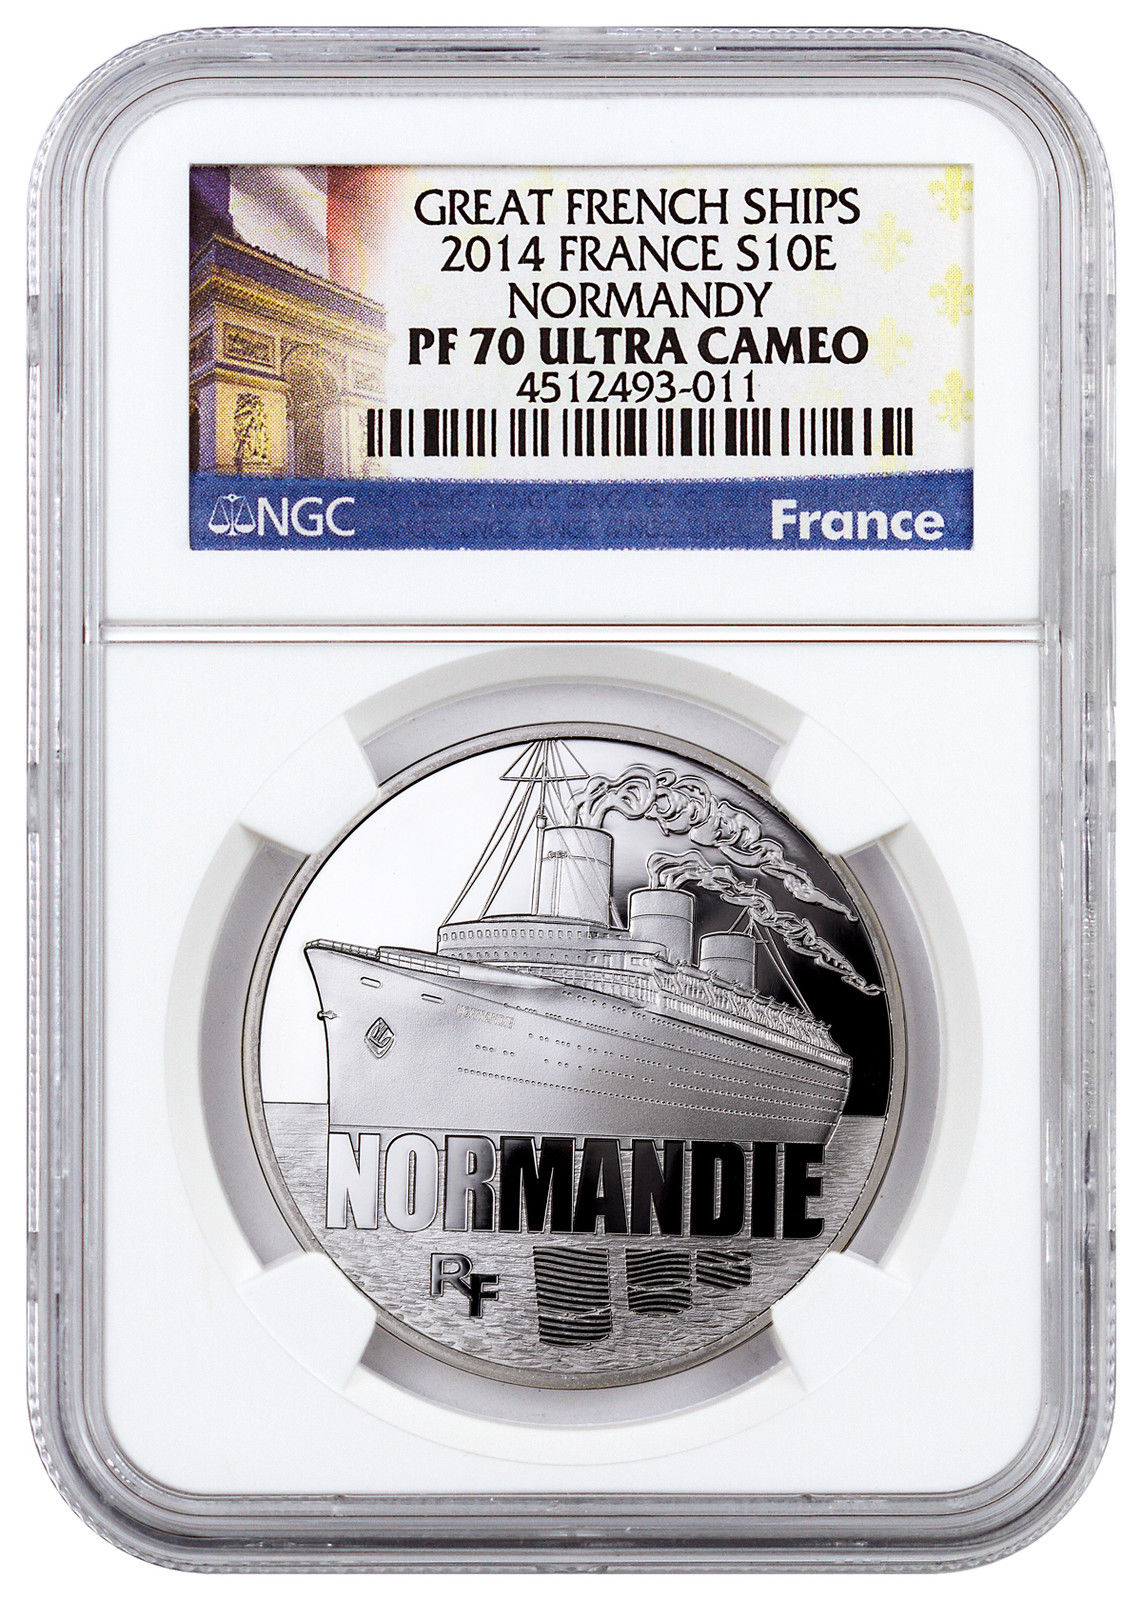 Haining tide France 2014 great ship series, Normandy commemorative silver coin NGC-PF70